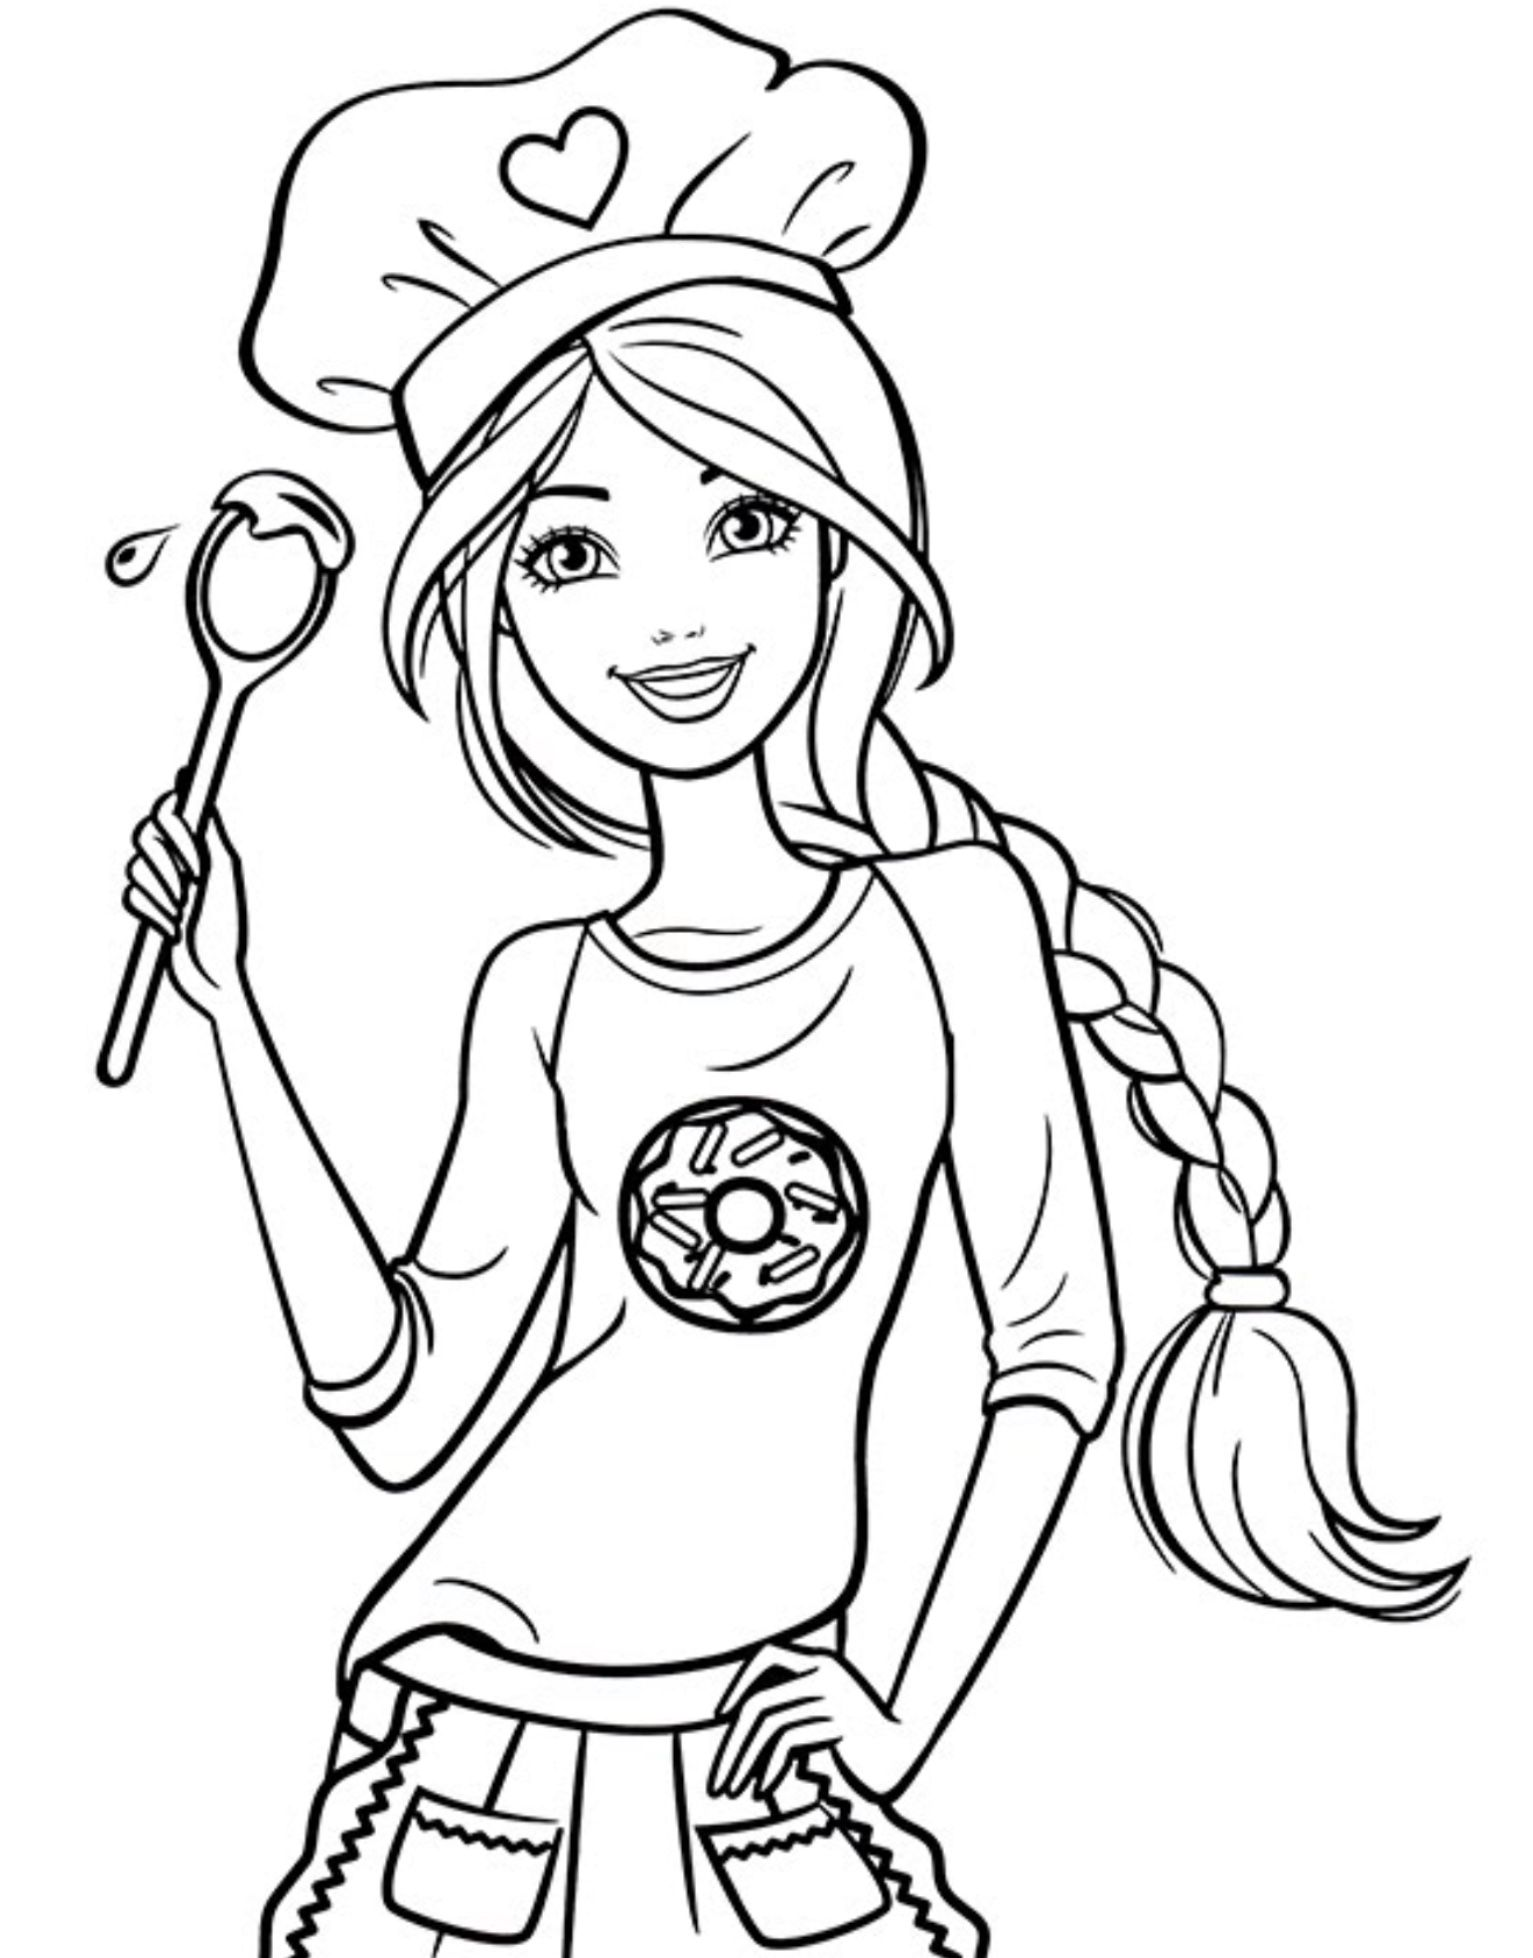 Chef Barbie Coloring Page Coloring Pages Pinterest Barbie